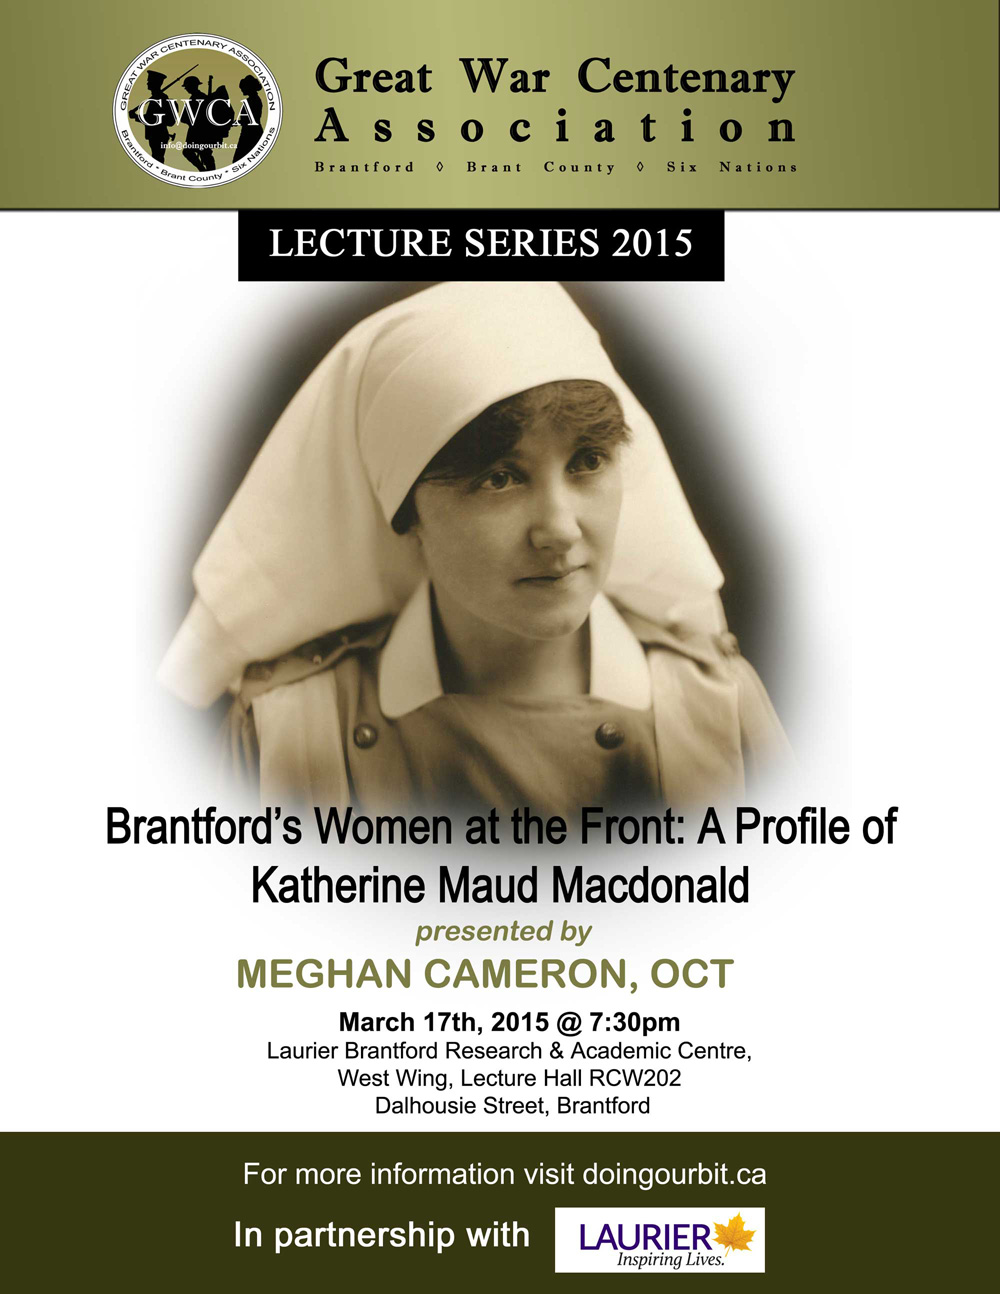 Katherine Maud Macdonald the First Canadian Nursing Sister to be Killed in Action - Great War Centenary Association - Brantford, Brant County Six Nations - First World WGreat War Centenary Association - Brantford, Brant County, Six Nations - First World War - Lecture Series